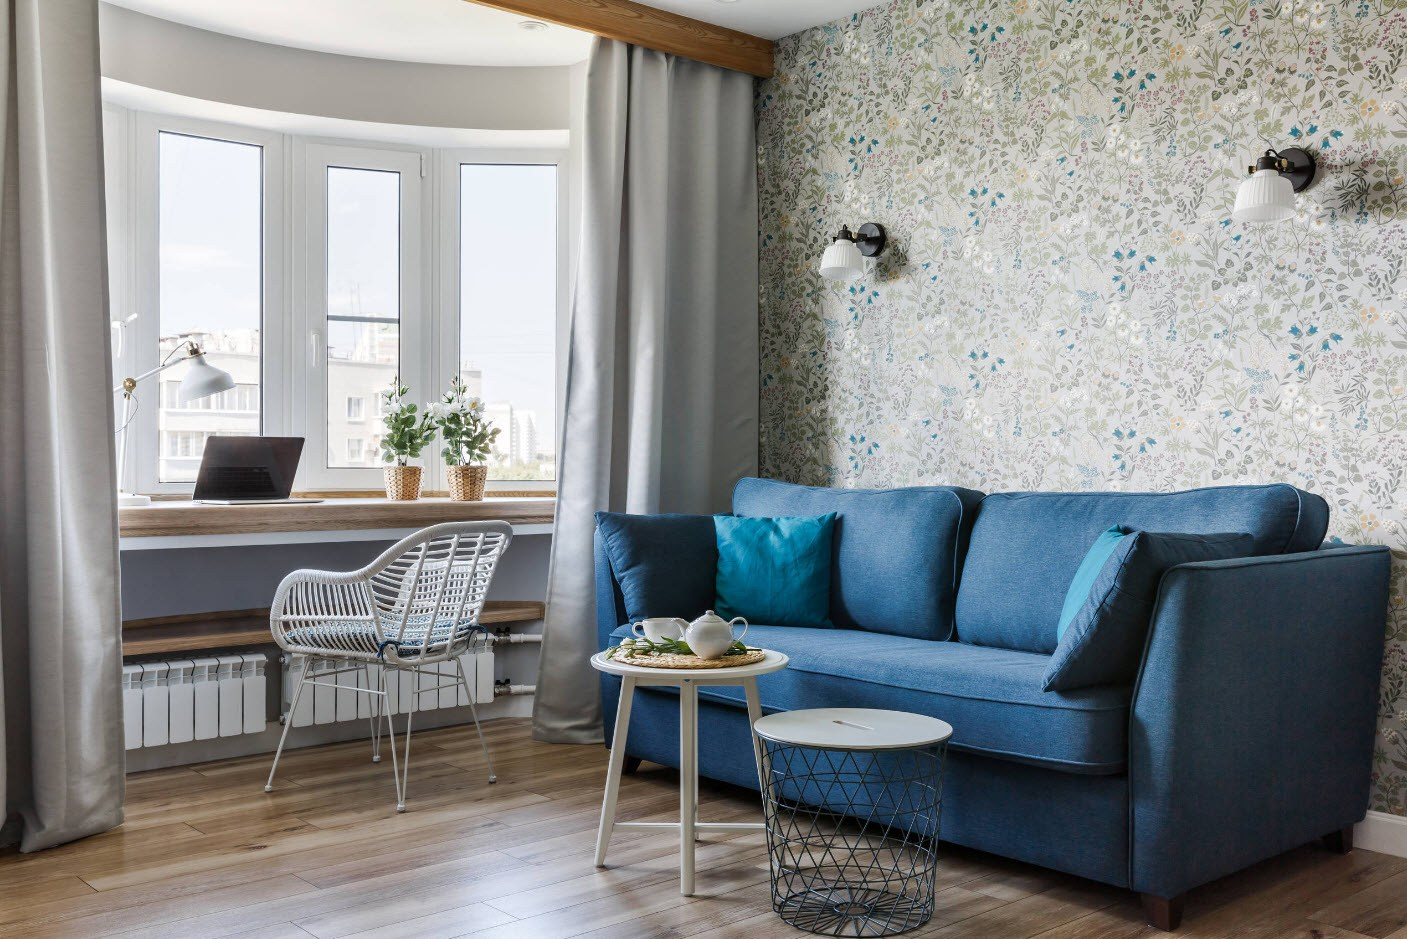 Large bay window balcony combined with the living room having blue sofa